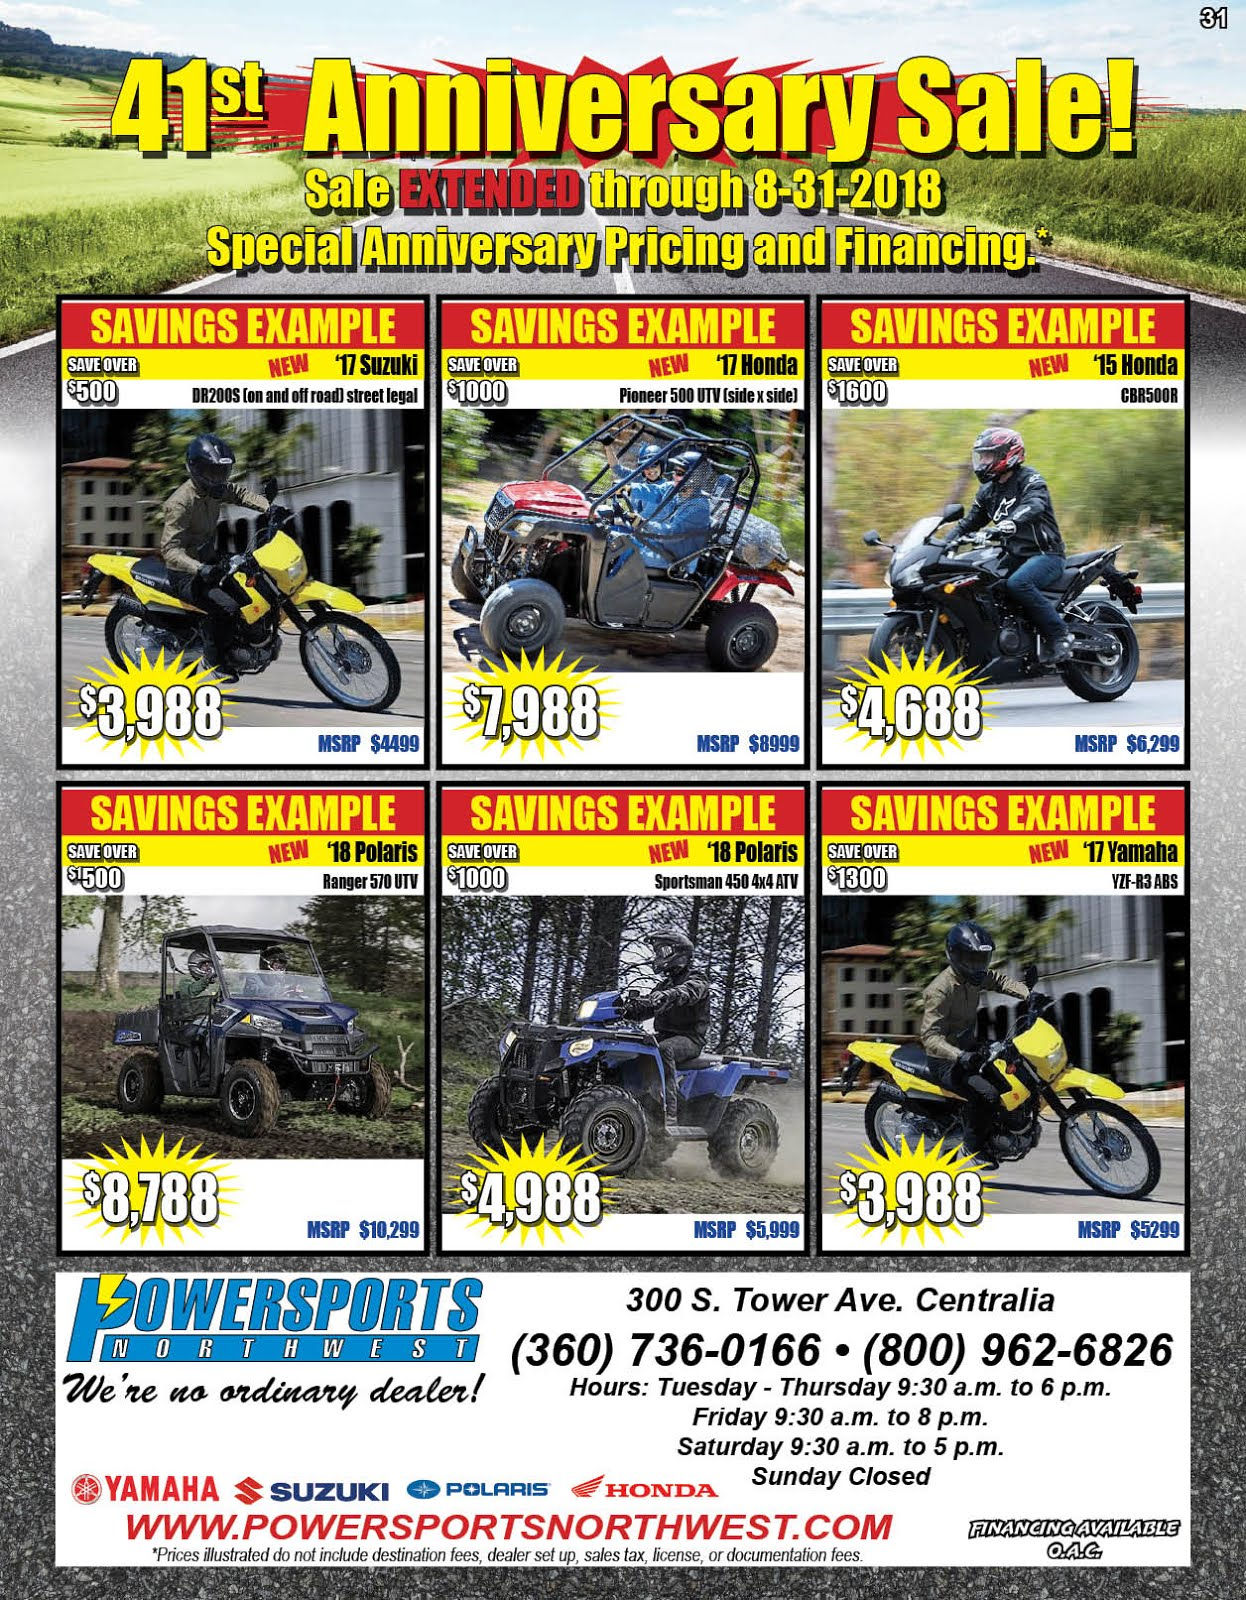 Powersports Northwest 41st Anniversary Sale EXTENDED!!